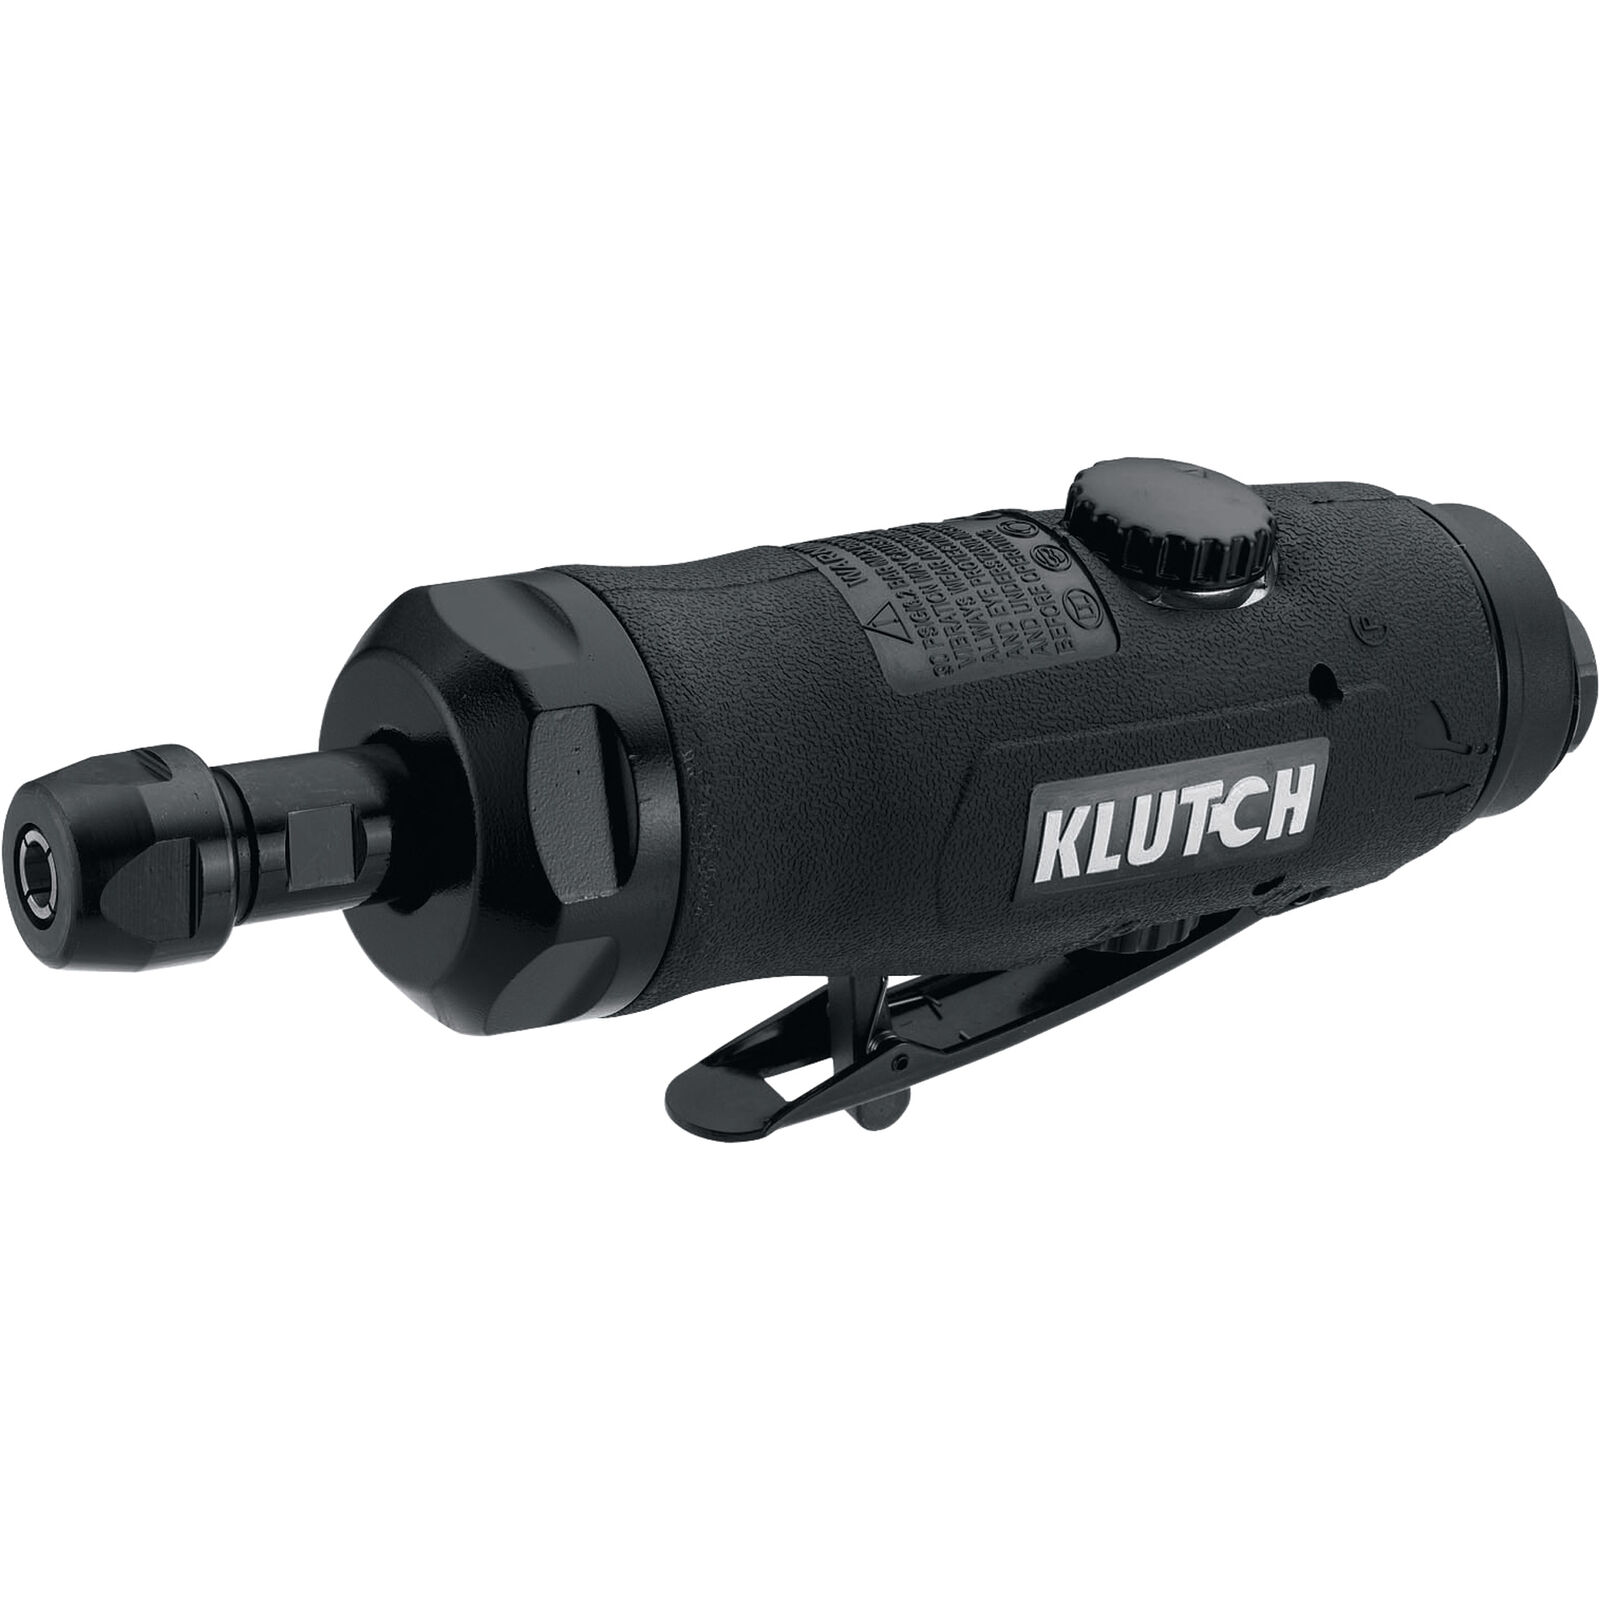 Klutch Low-Noise Air Die Grinder #A01-002-0027. Buy it now for 62.99